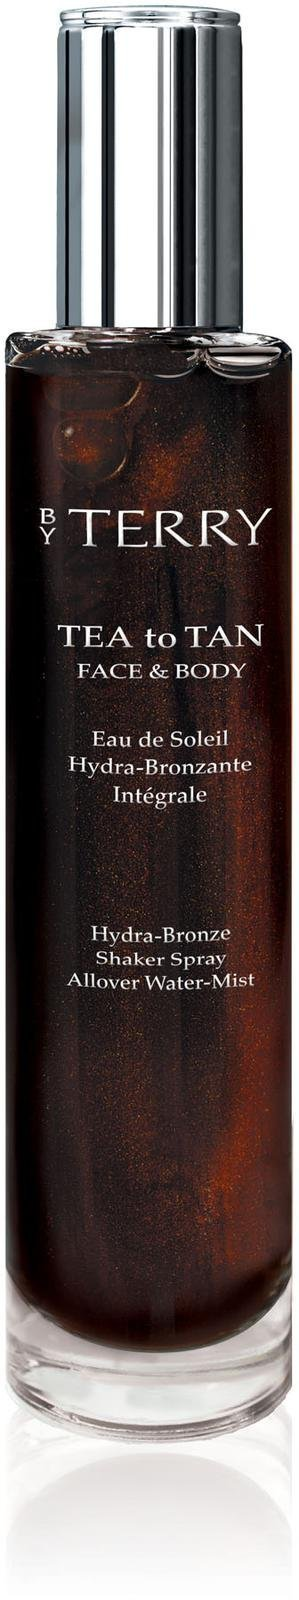 By Terry Tea to Tan Hydra-Bronze Shaker Spray Allover Water Mist, 3.38 Ounce by By Terry